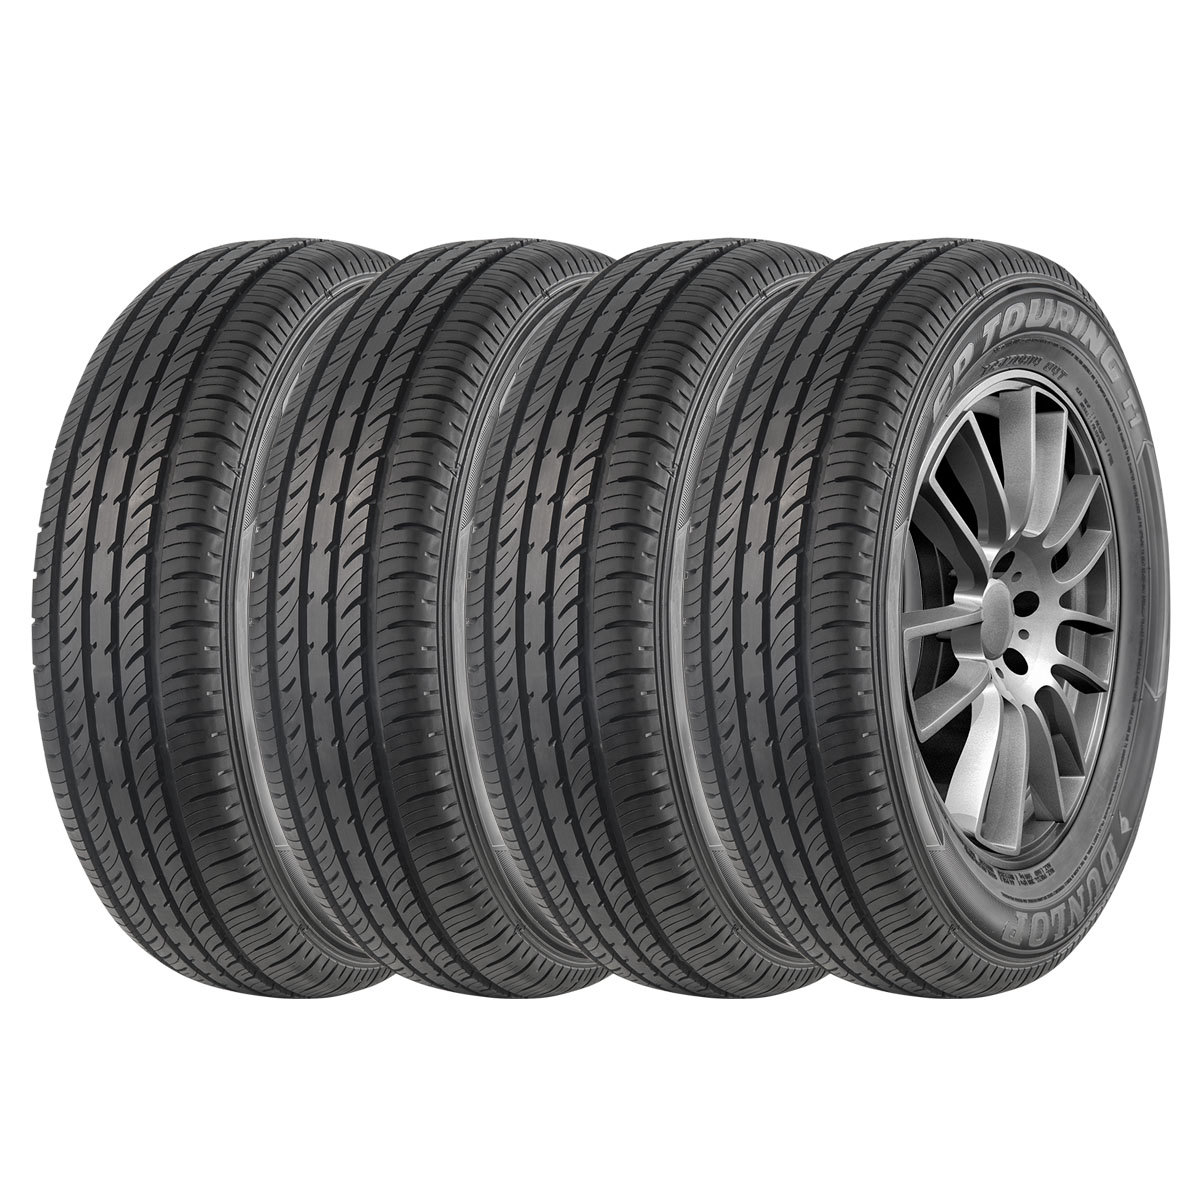 Kit 4 Pneus Dunlop Aro 13 – 175/70R13 SP Touring T1